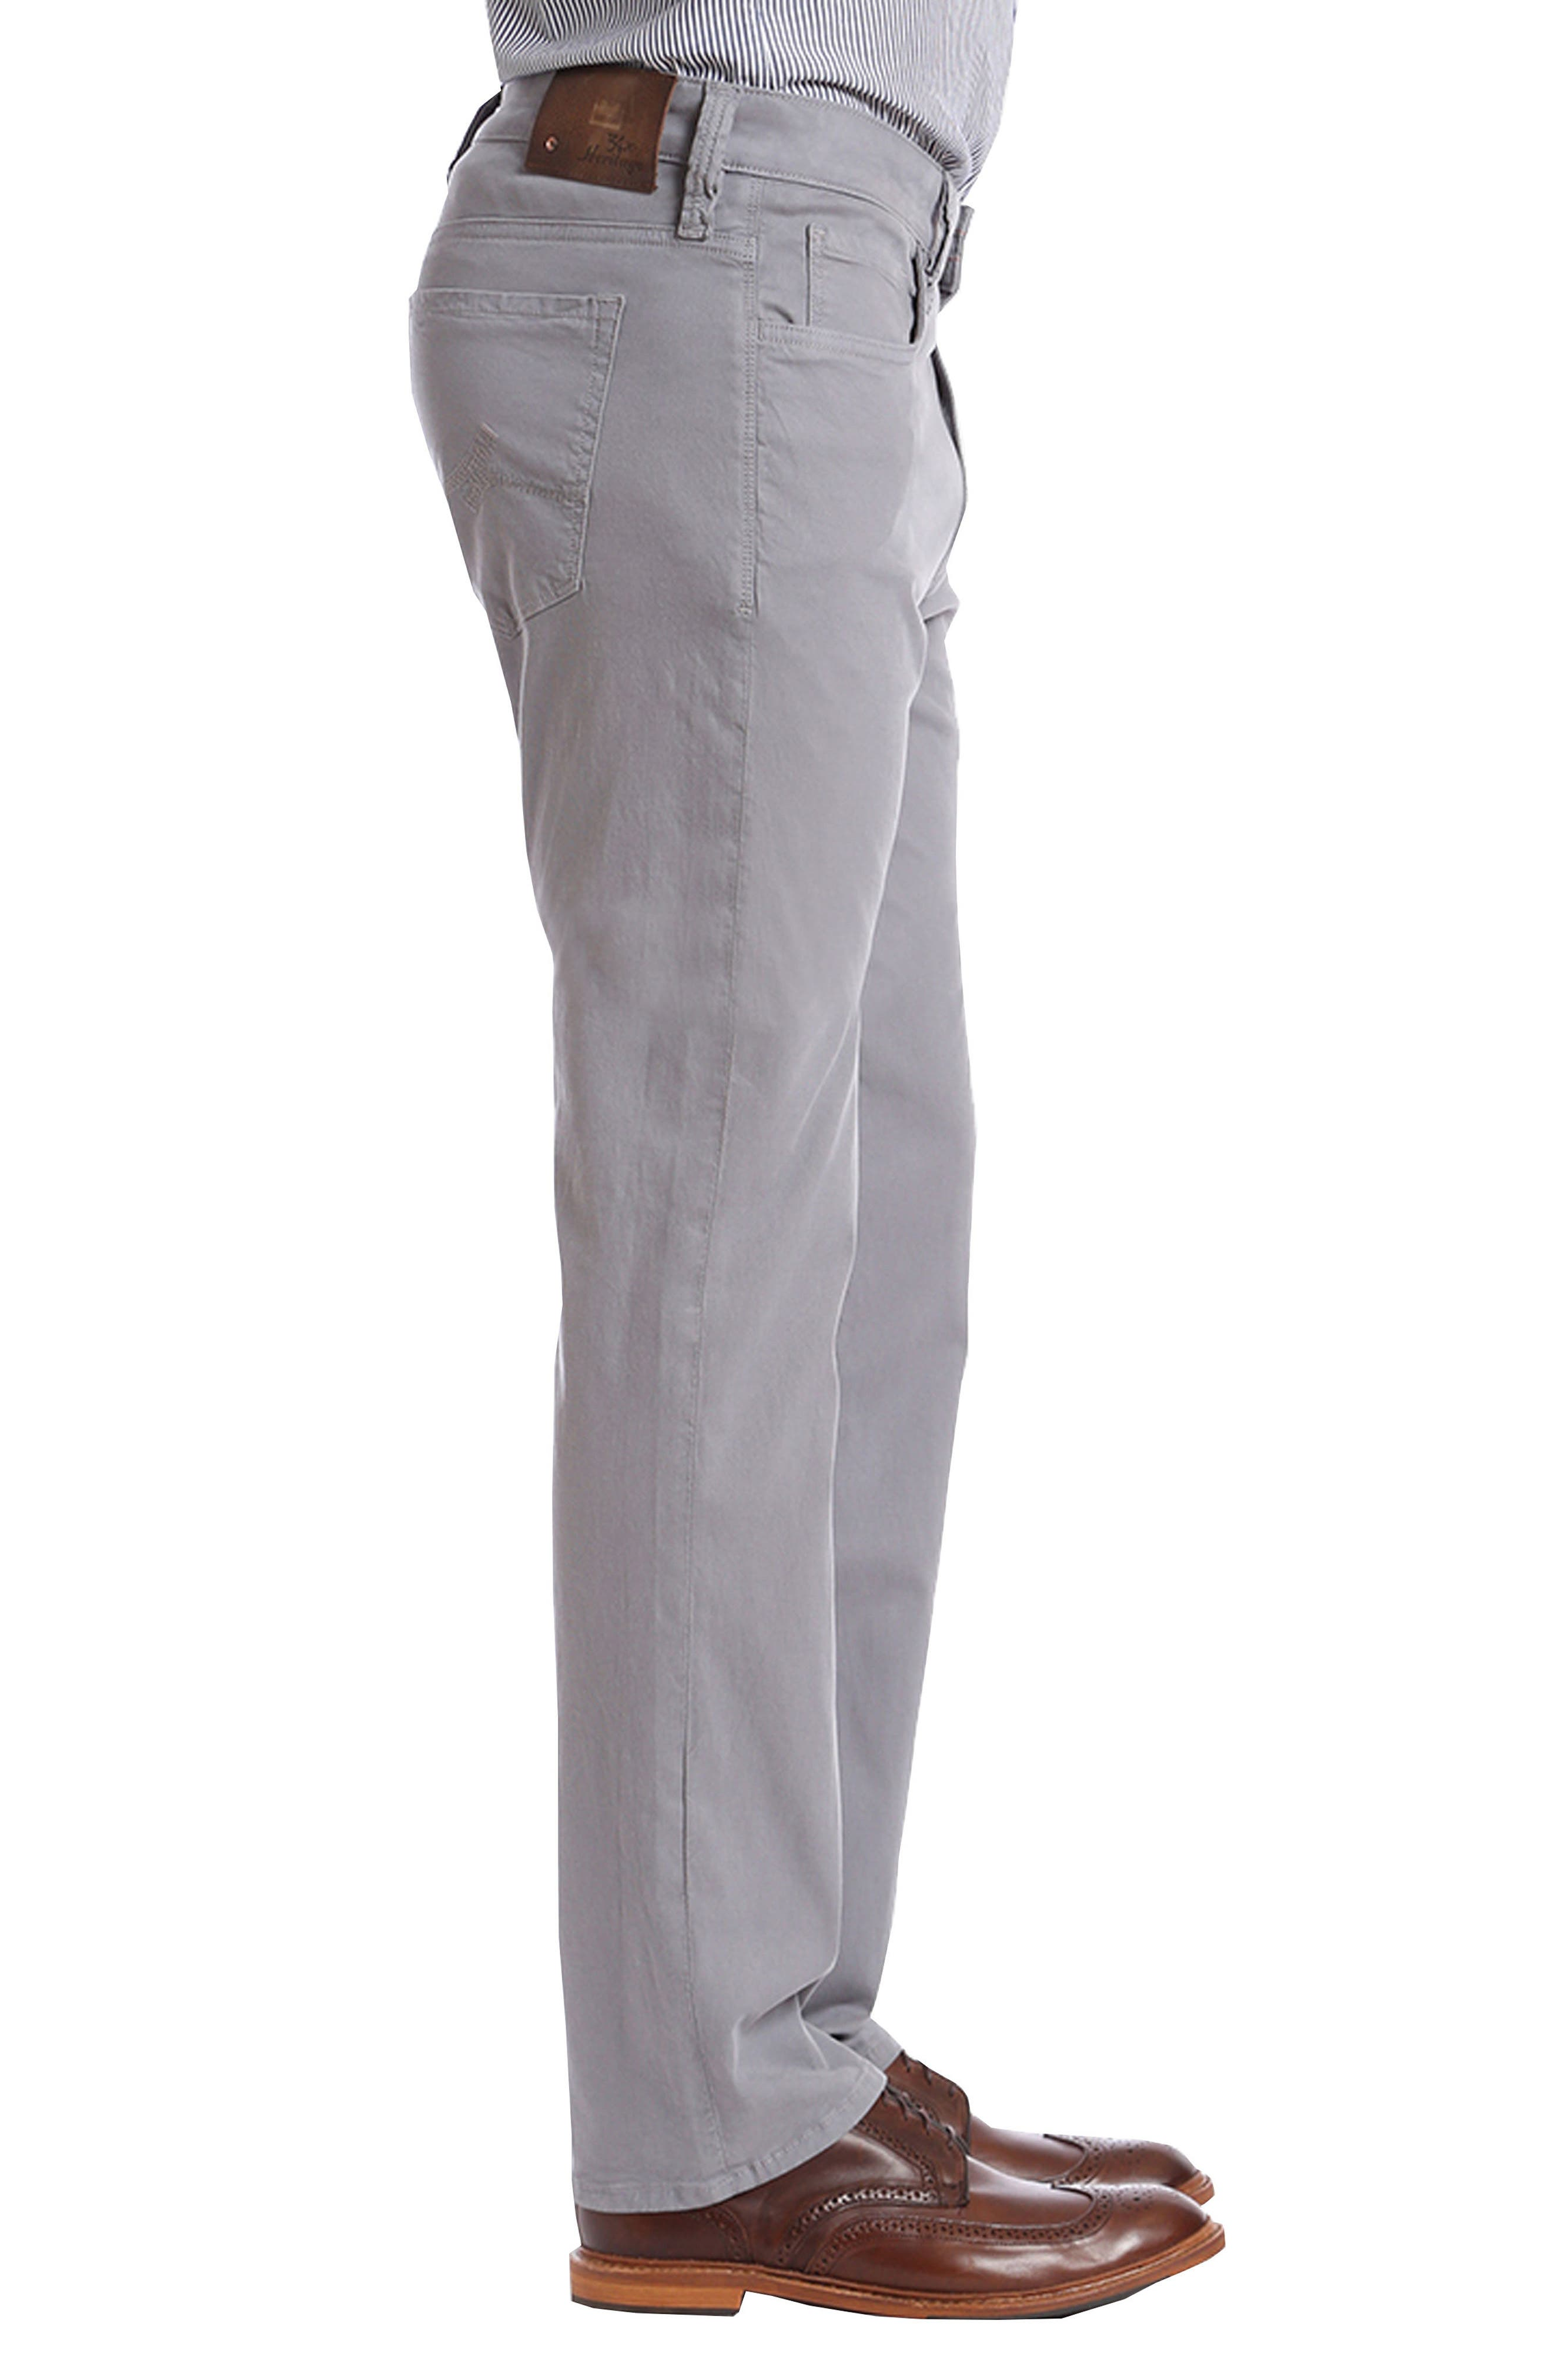 Courage Straight Leg Twill Pants,                             Alternate thumbnail 3, color,                             GREY FINE TWILL